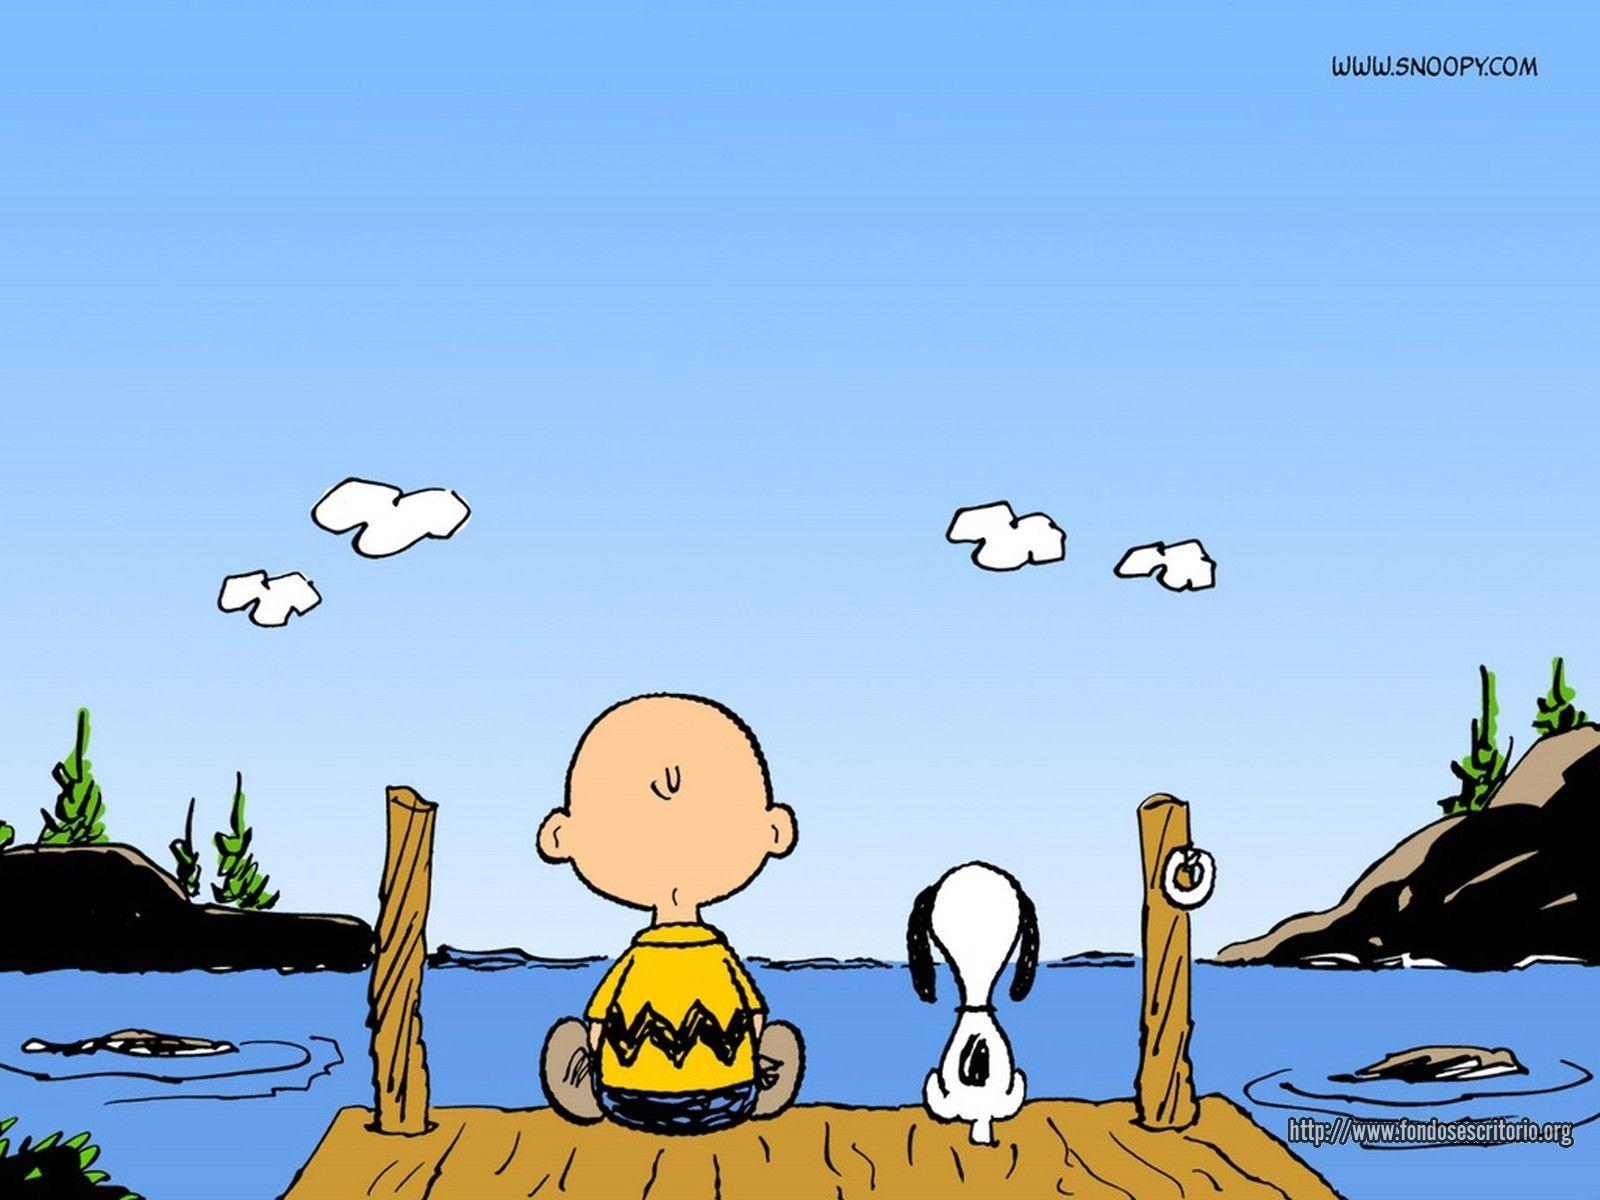 Snoopy Desktop Wallpapers - Top Free